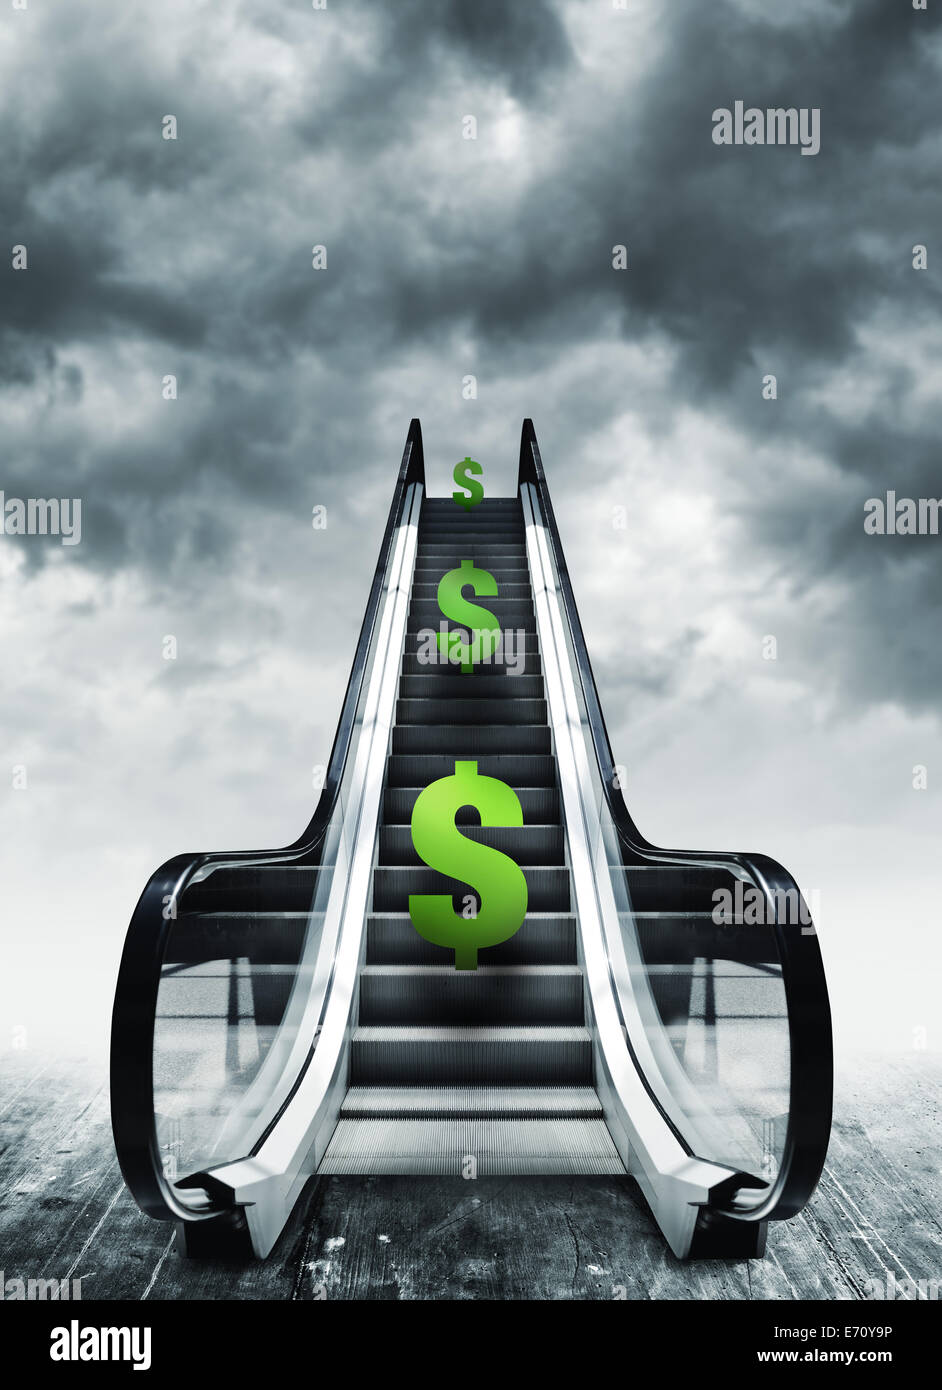 Dollar symbol on escalators. Currency concept, inflation and deflation, finance and exchange rate. - Stock Image